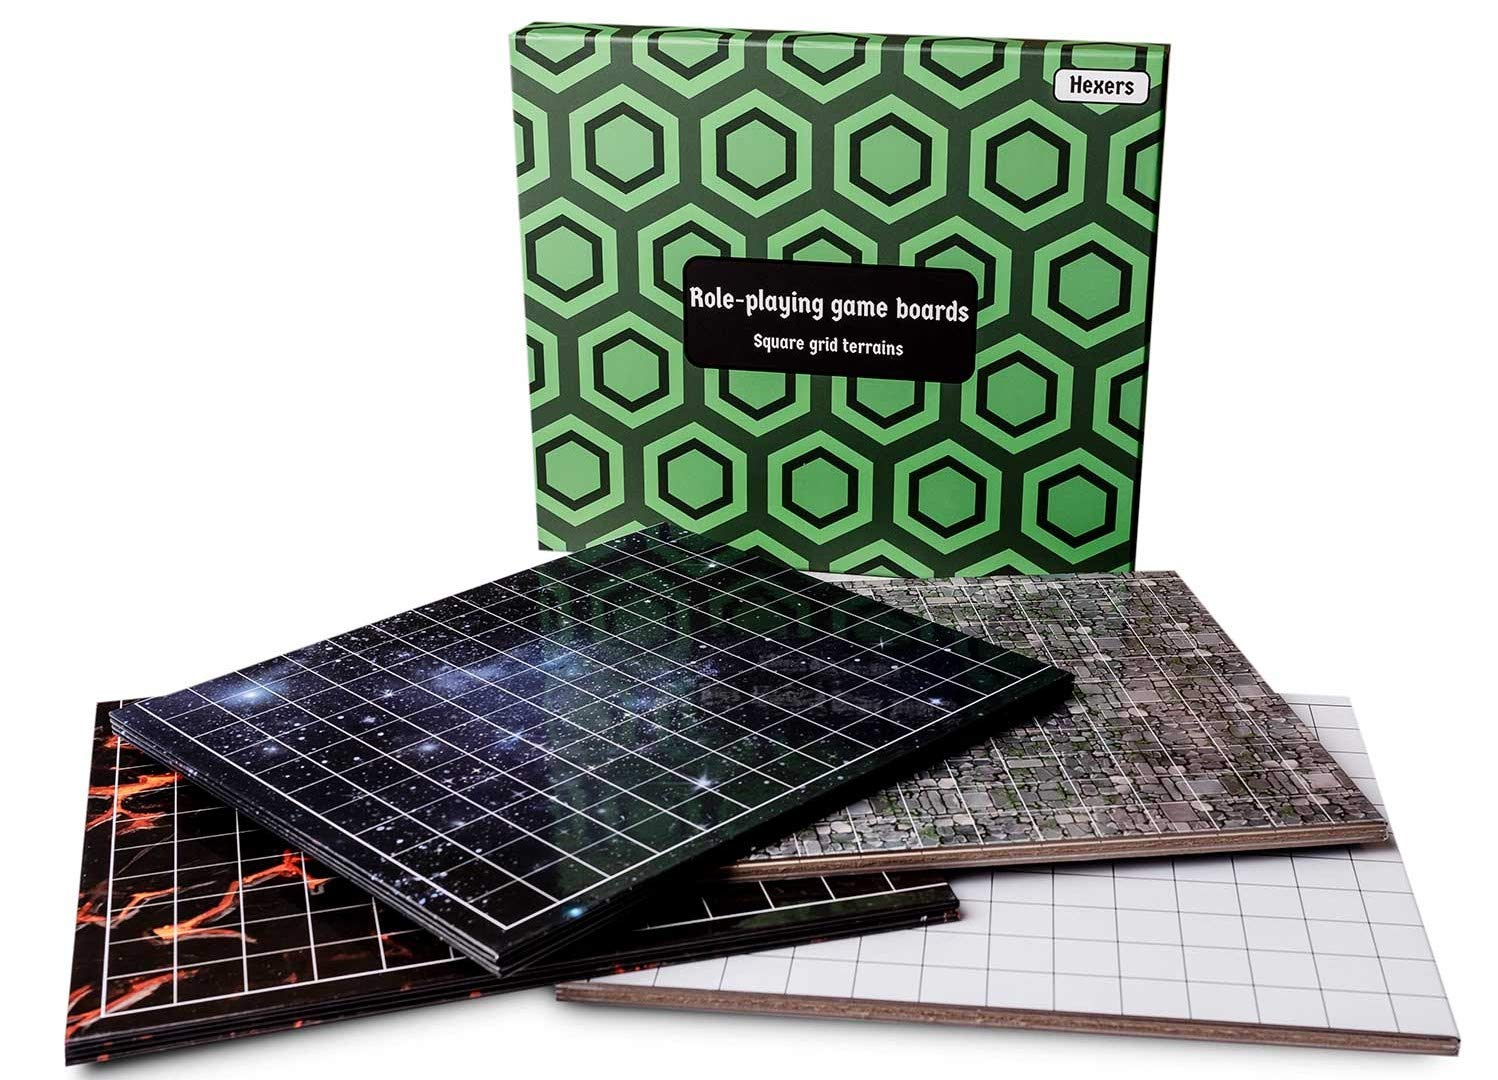 Foldable /& Dry Erase Hexers Role-Playing Game Board 8 Different terrains 27 on 23 inches Dungeons and Dragons DND Pathfinder RPG Compatible Square Grid Terrains 1 inch Squares